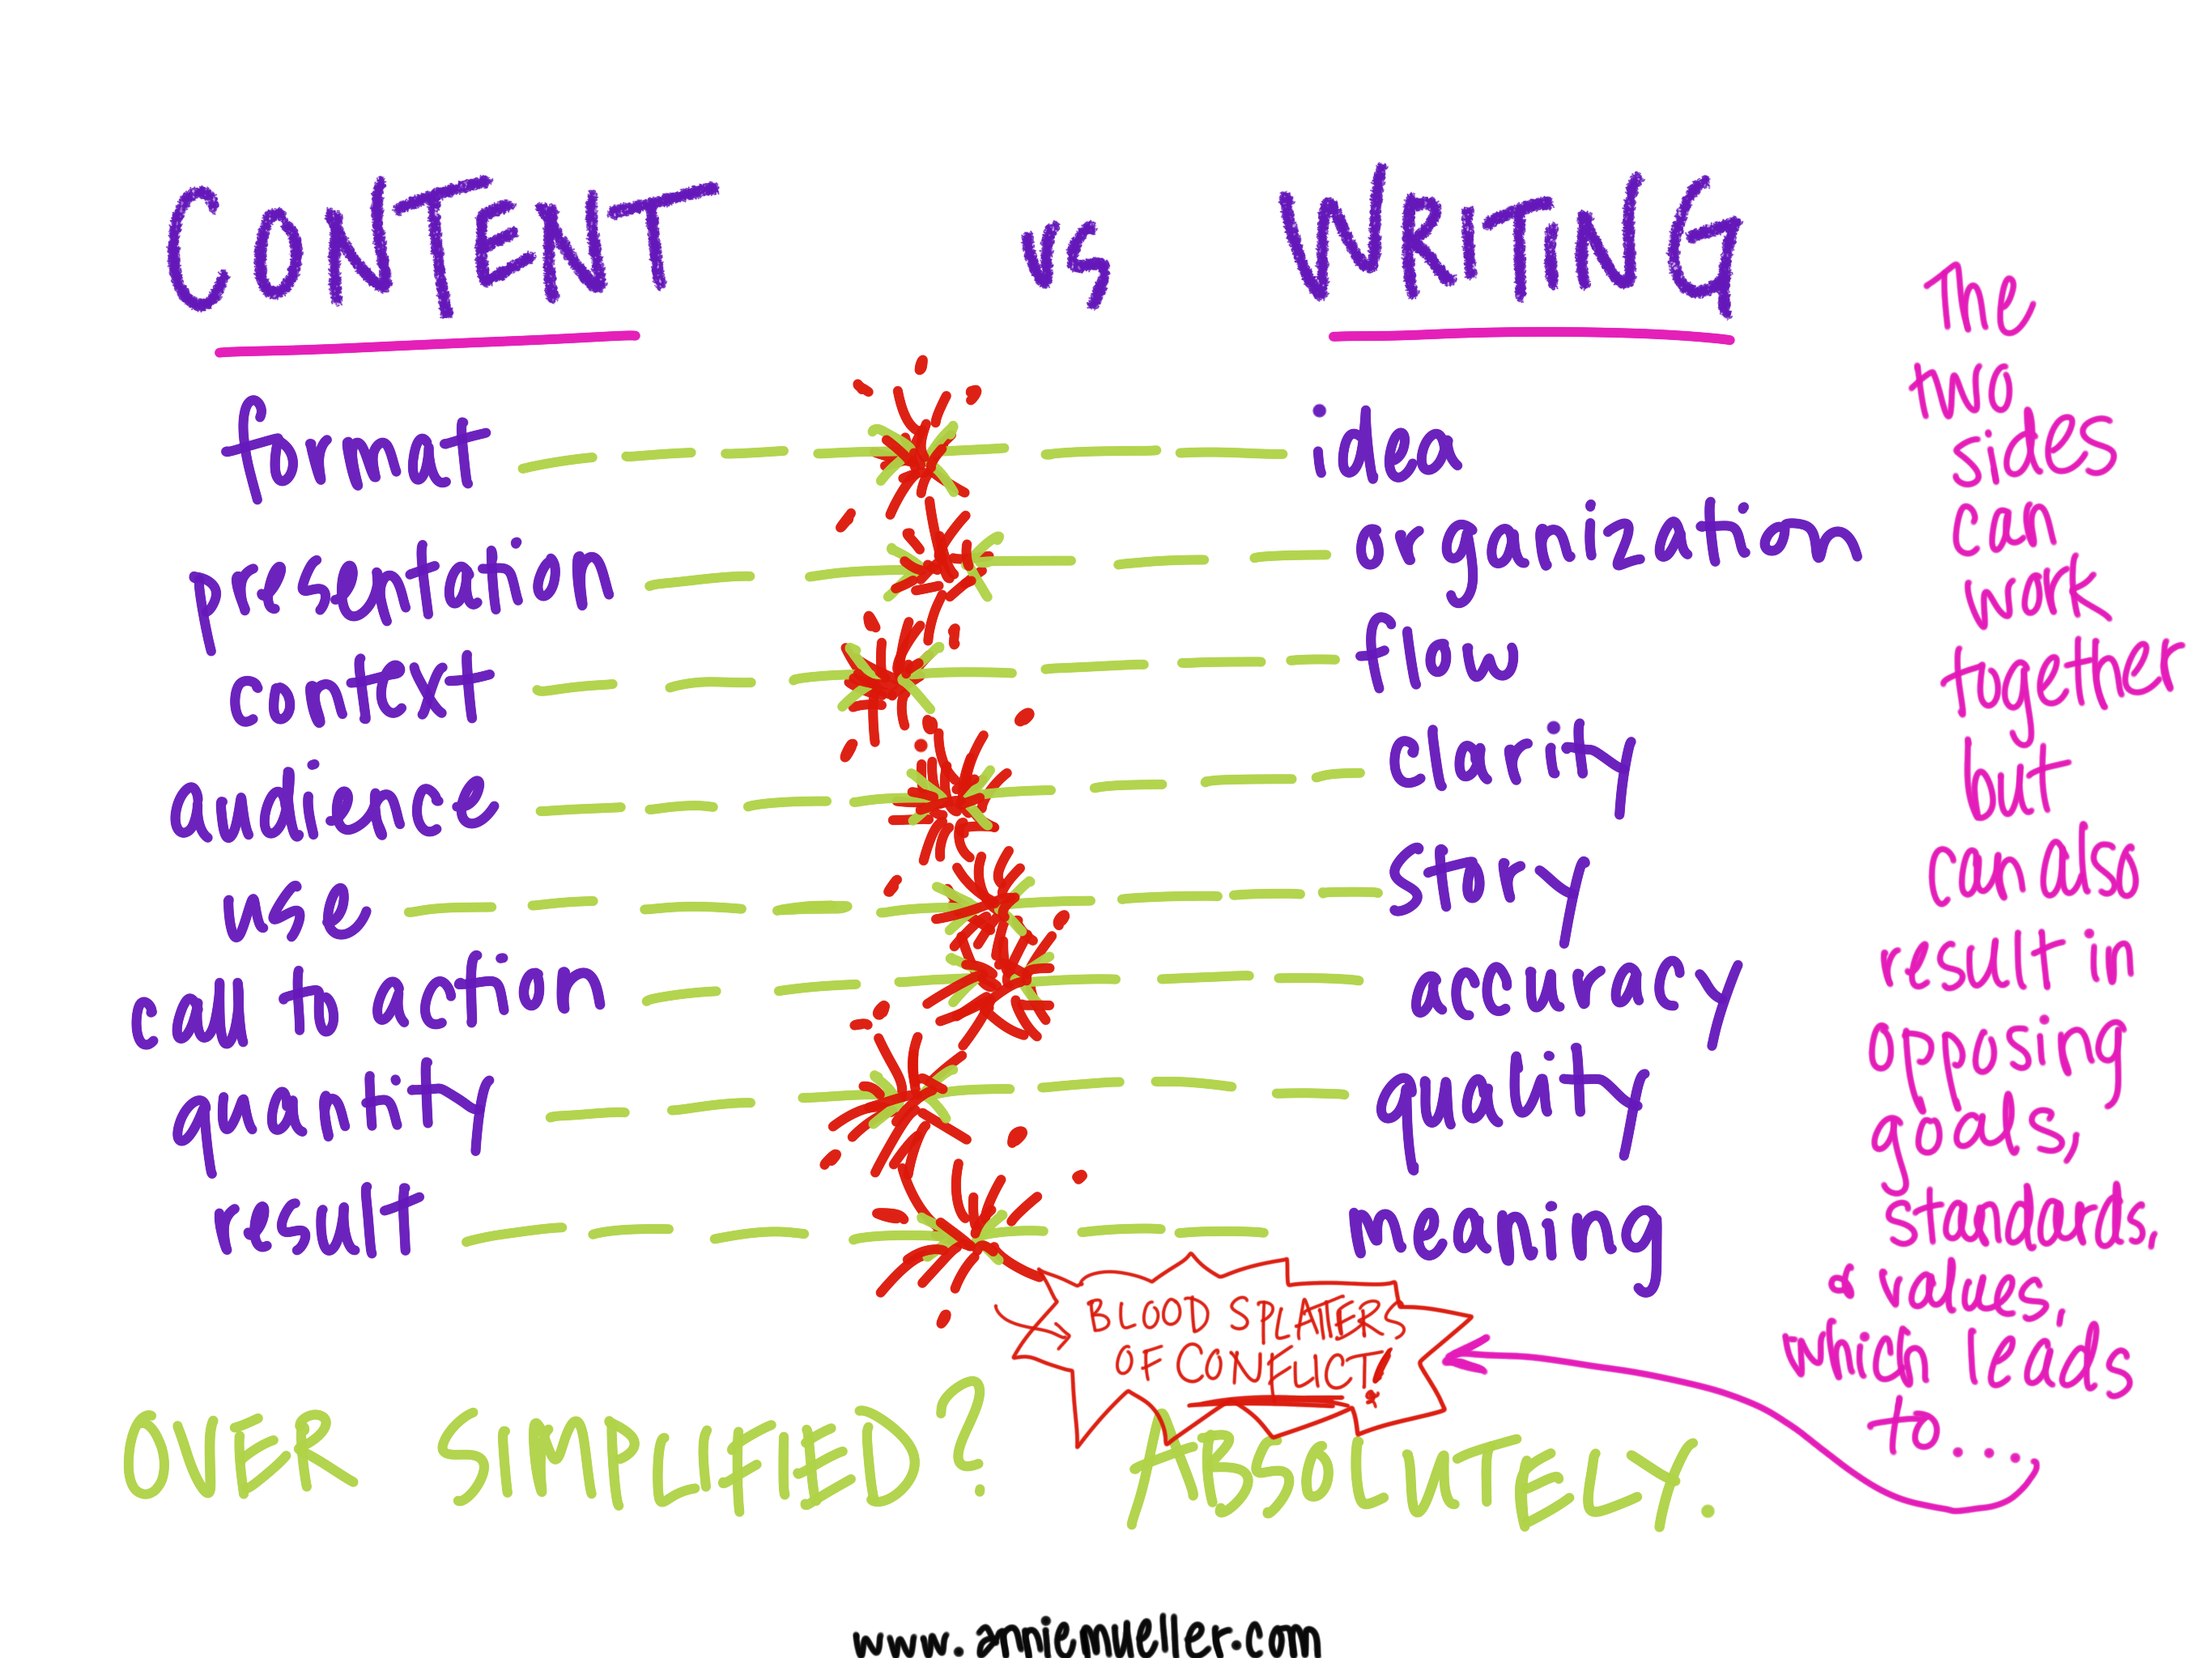 Writing vs content